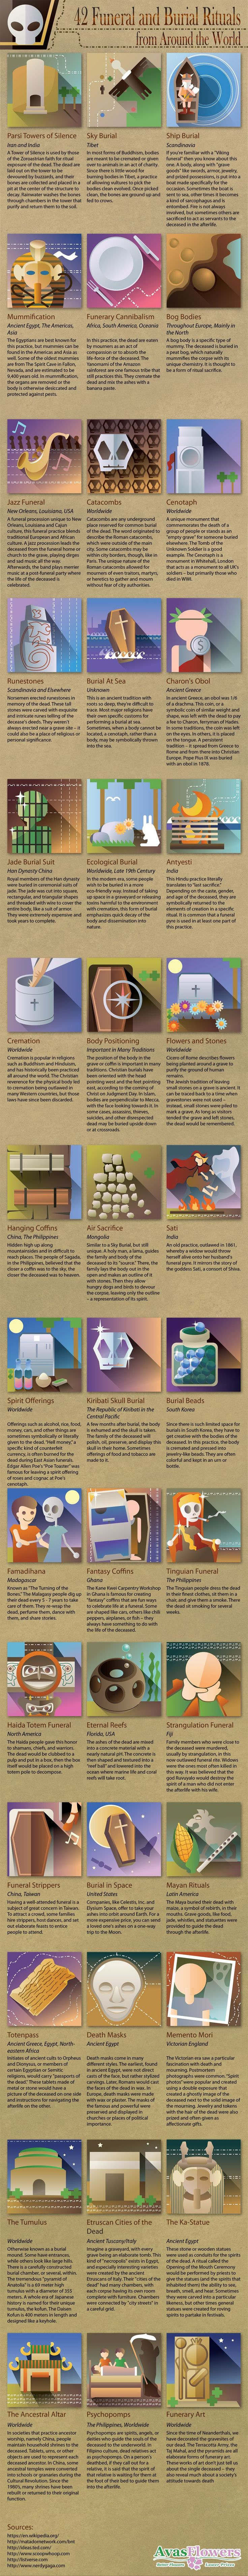 42 Funeral and Burial Rituals from Around the World #infographic #History #Rituals